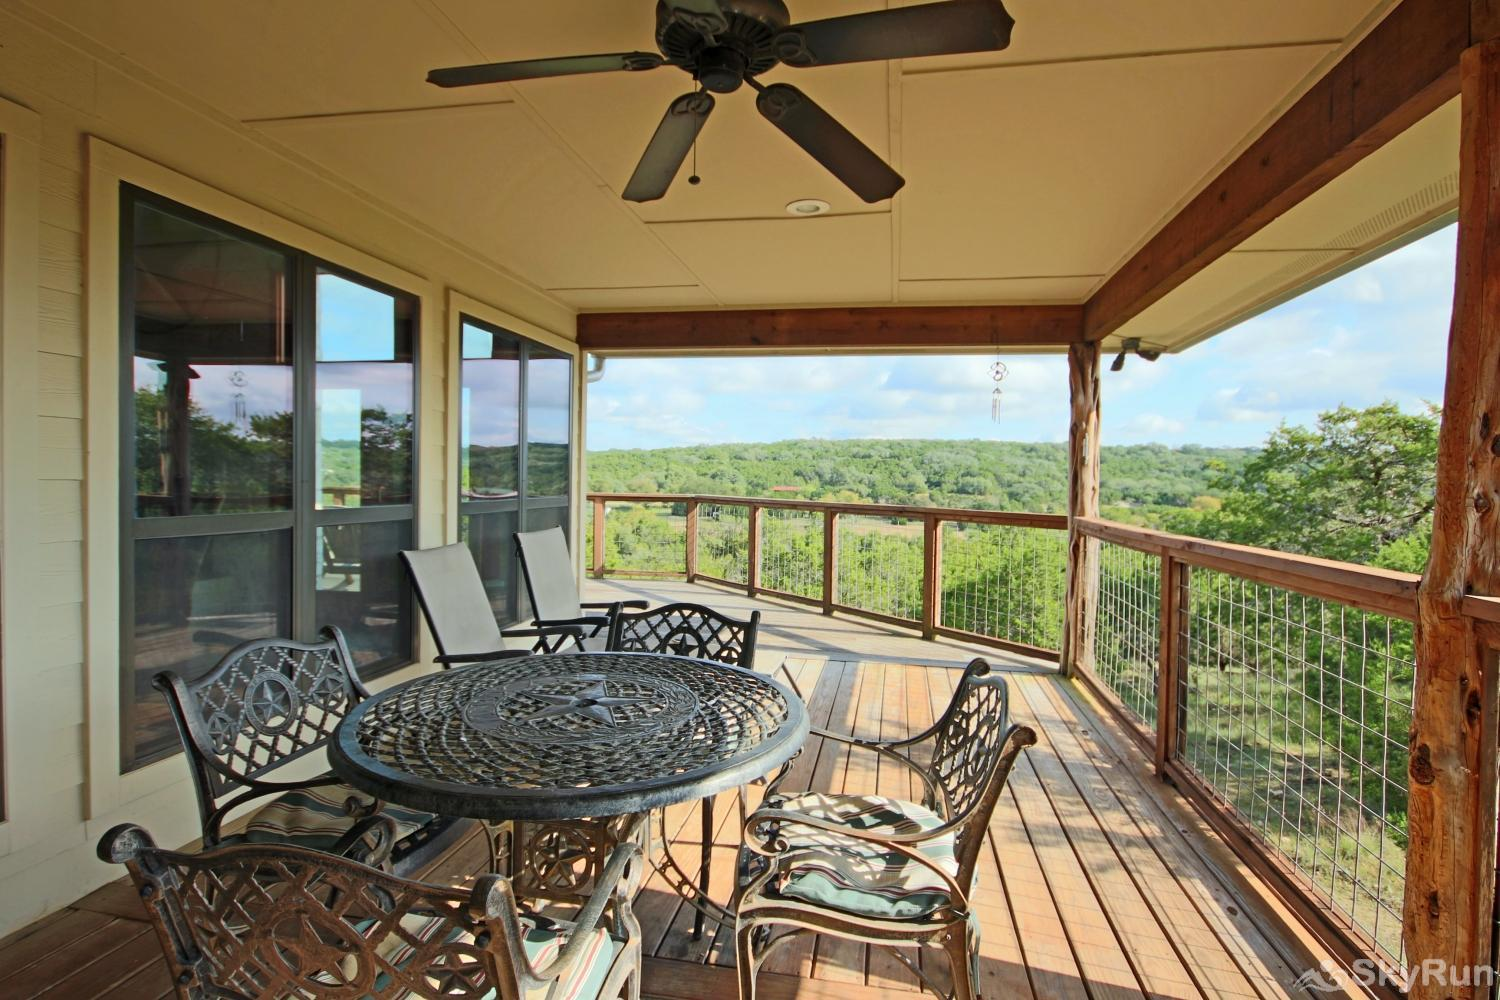 STAR HOUSE Book your Wimberley getaway today!